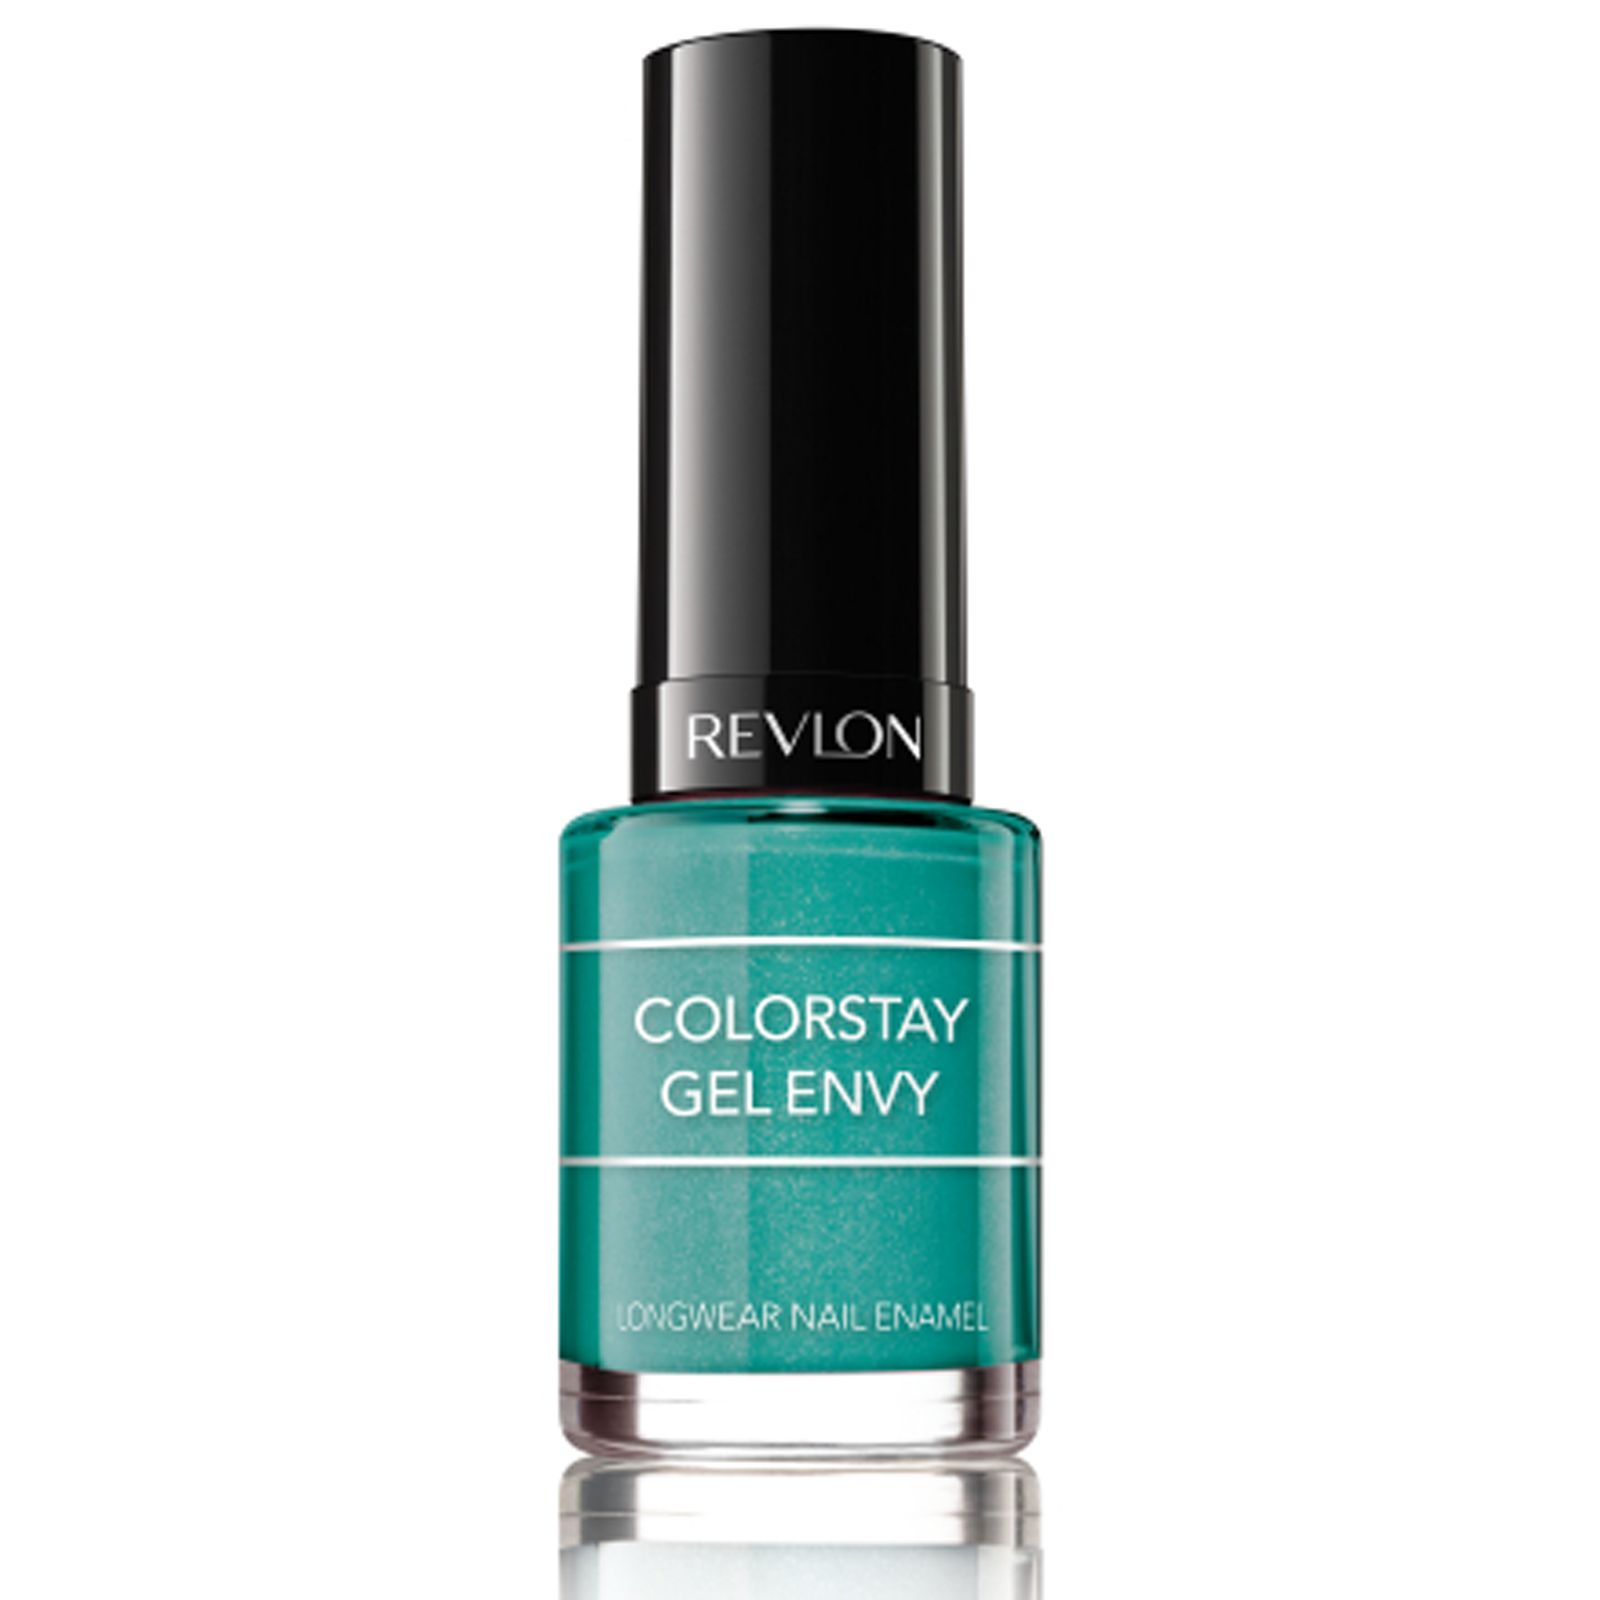 revlon colorstay gel envy instructions